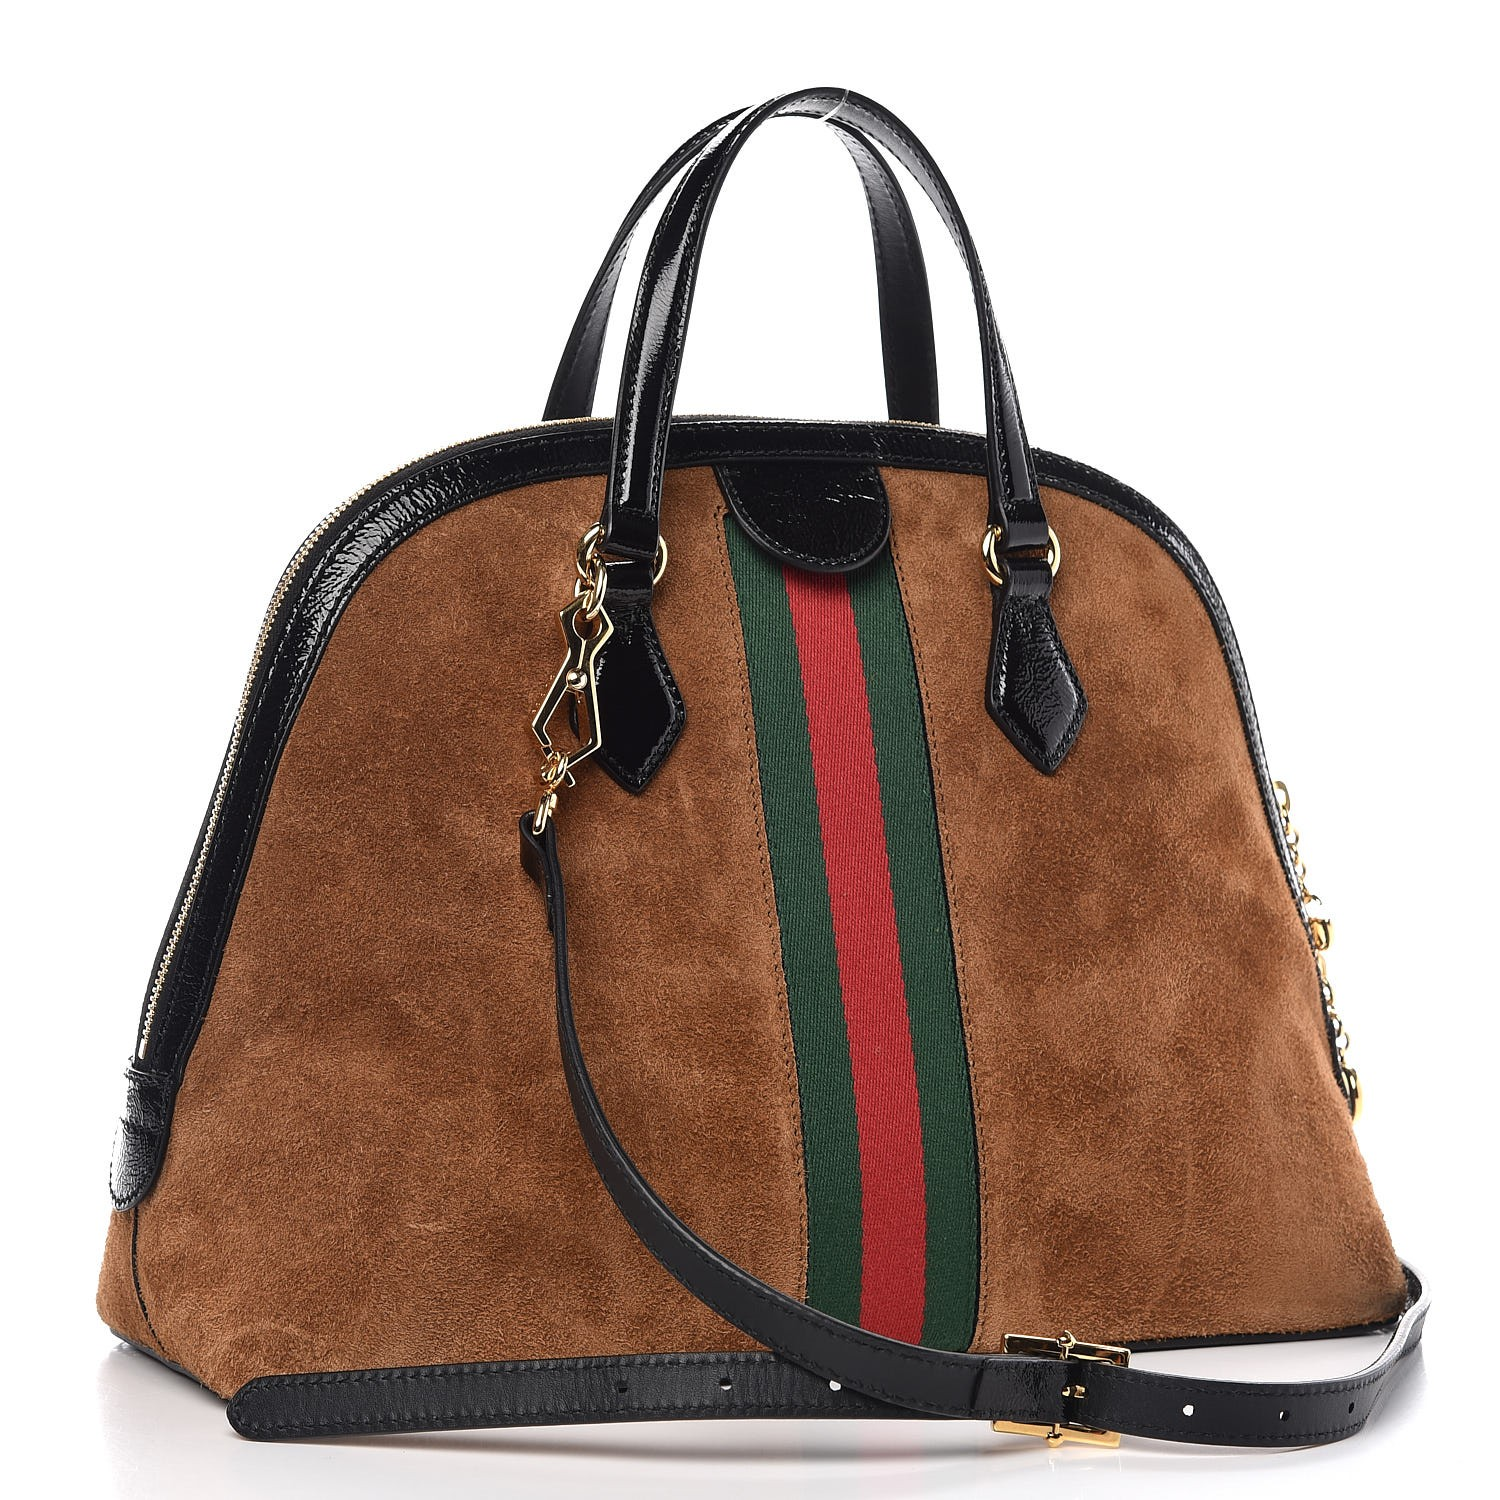 84c61df384c GUCCI Suede Patent GG Web Medium Ophidia Top Handle Bag Brown 304147